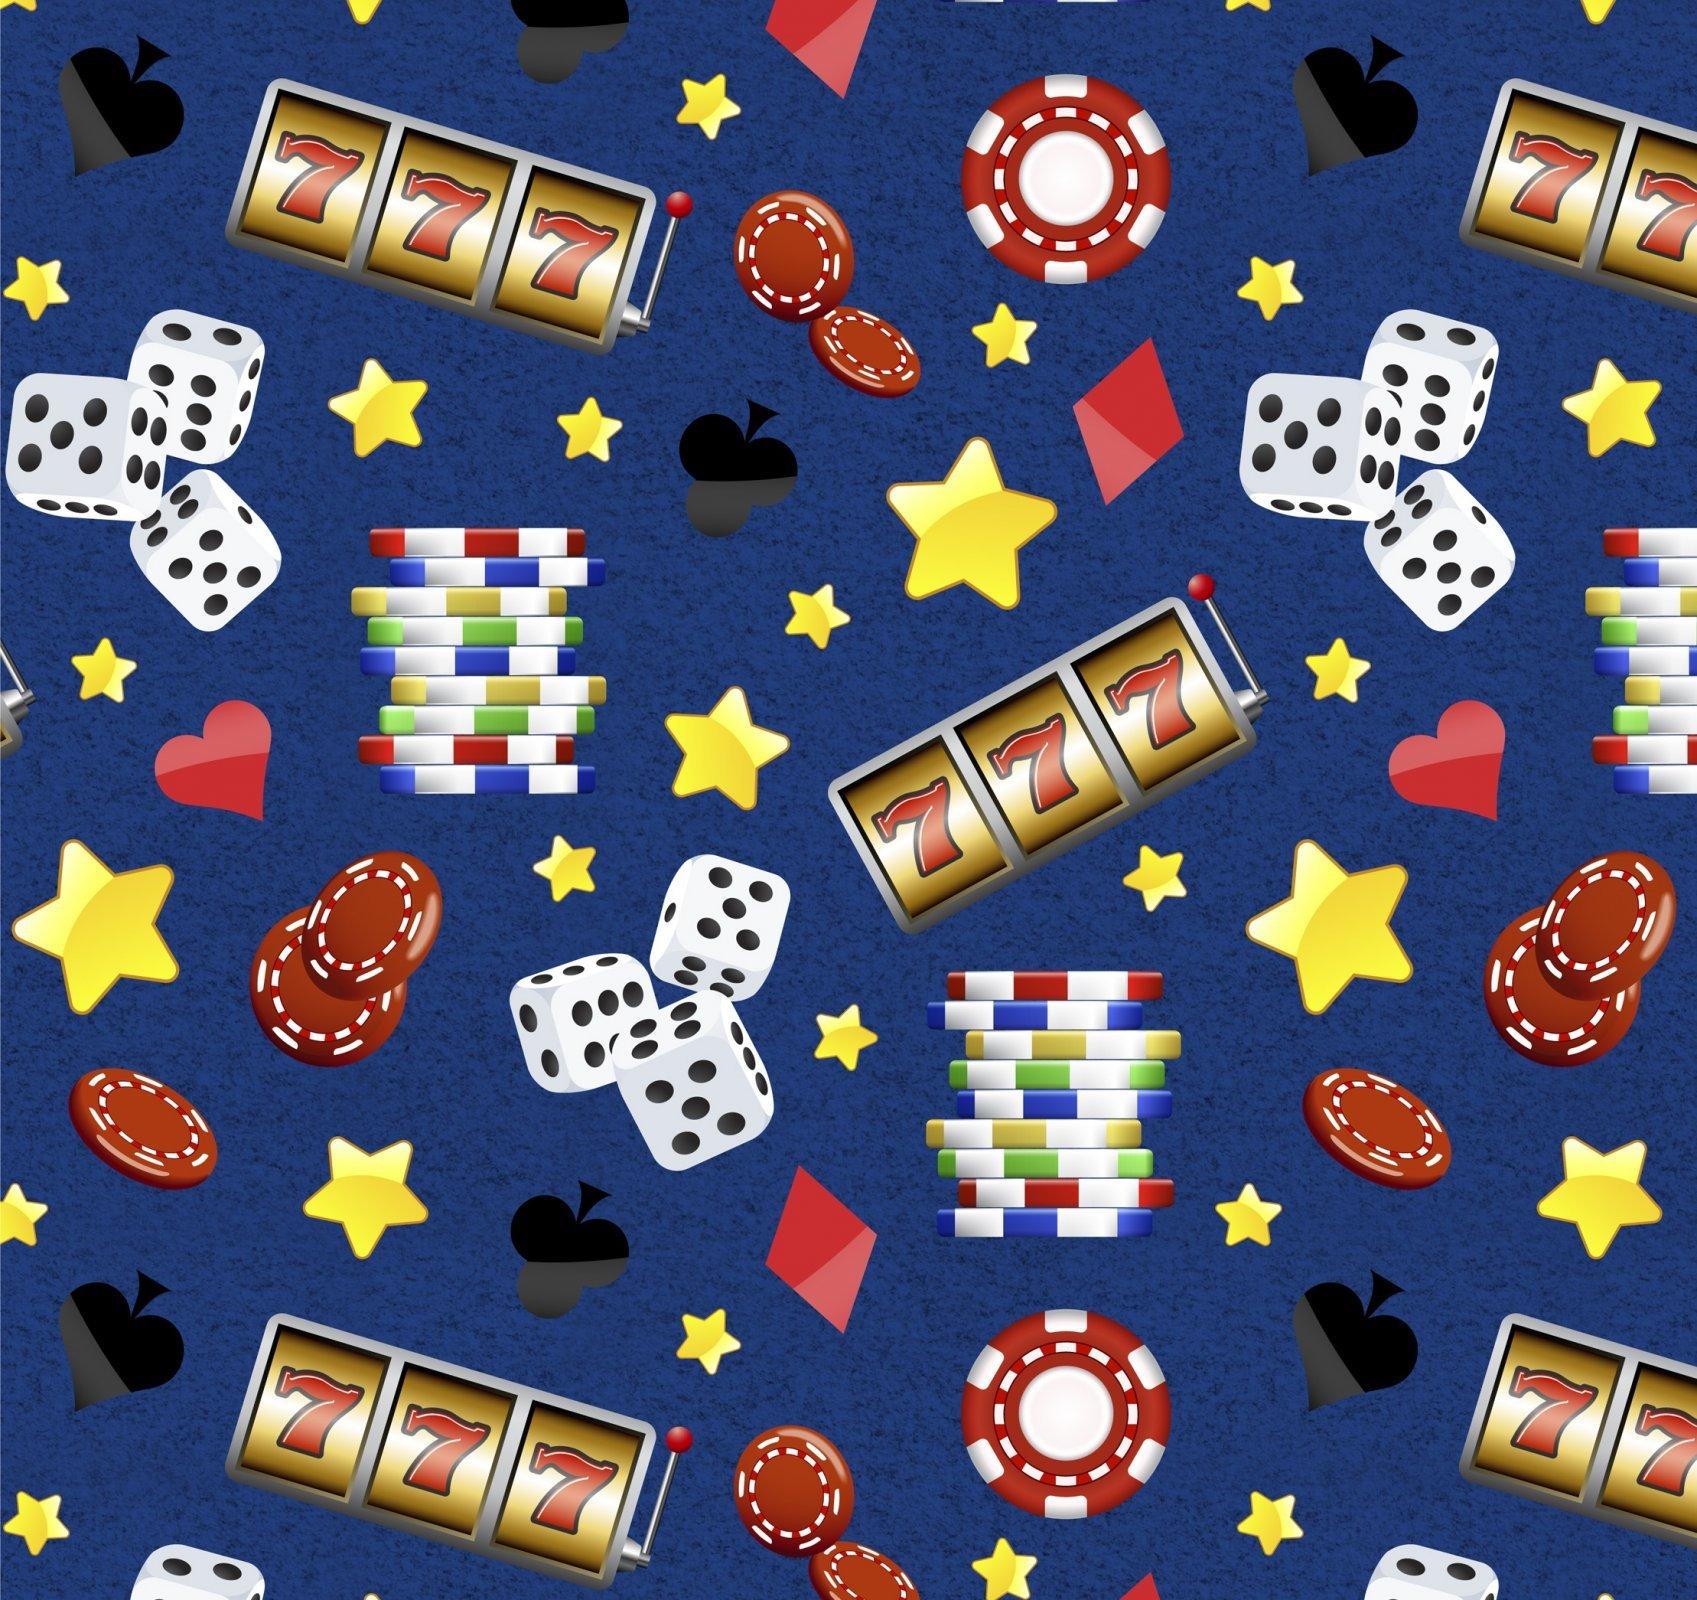 Casino Stars on Blue David Textiles Exclusive Digital Print Blue Fabric by the Yard